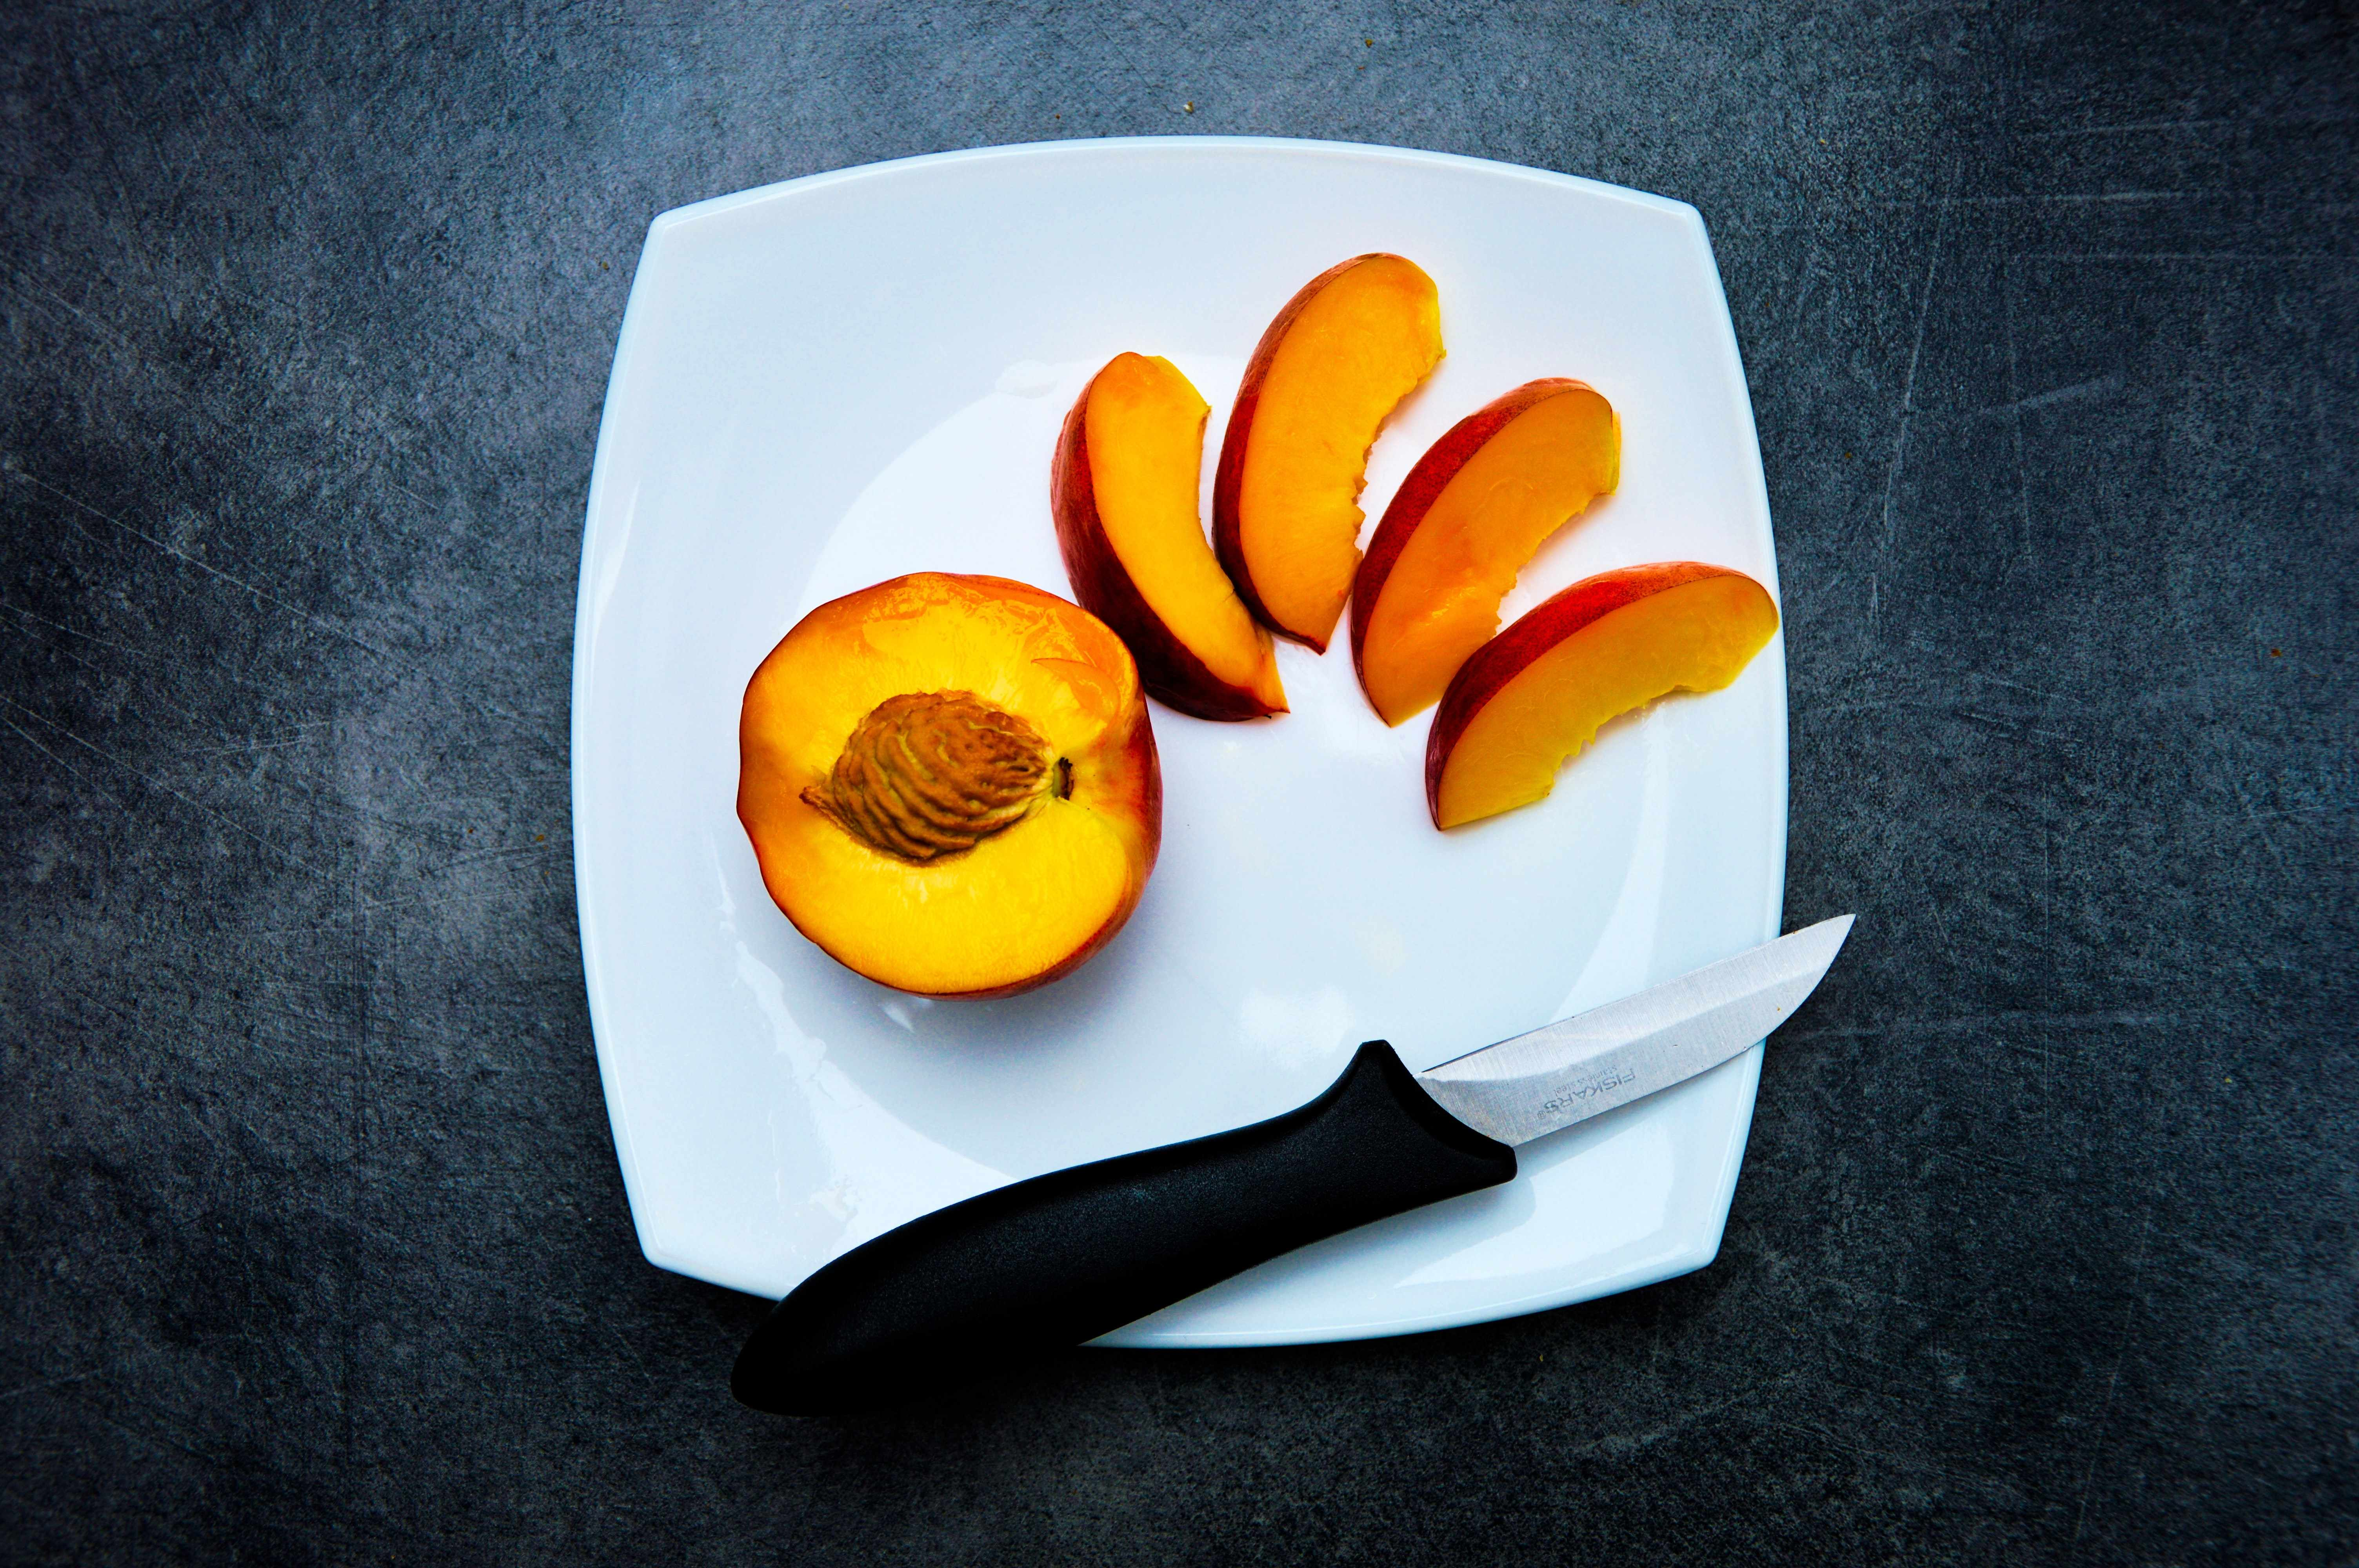 Stone Fruits: What Are They?